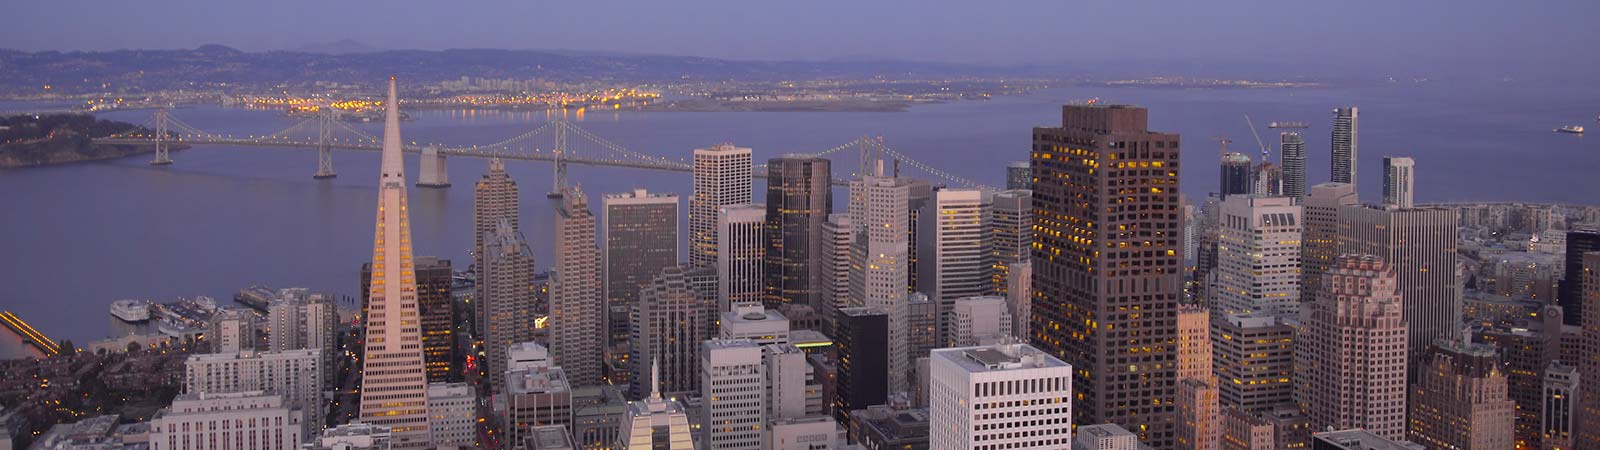 Header - Hardee - Sanfrancisco